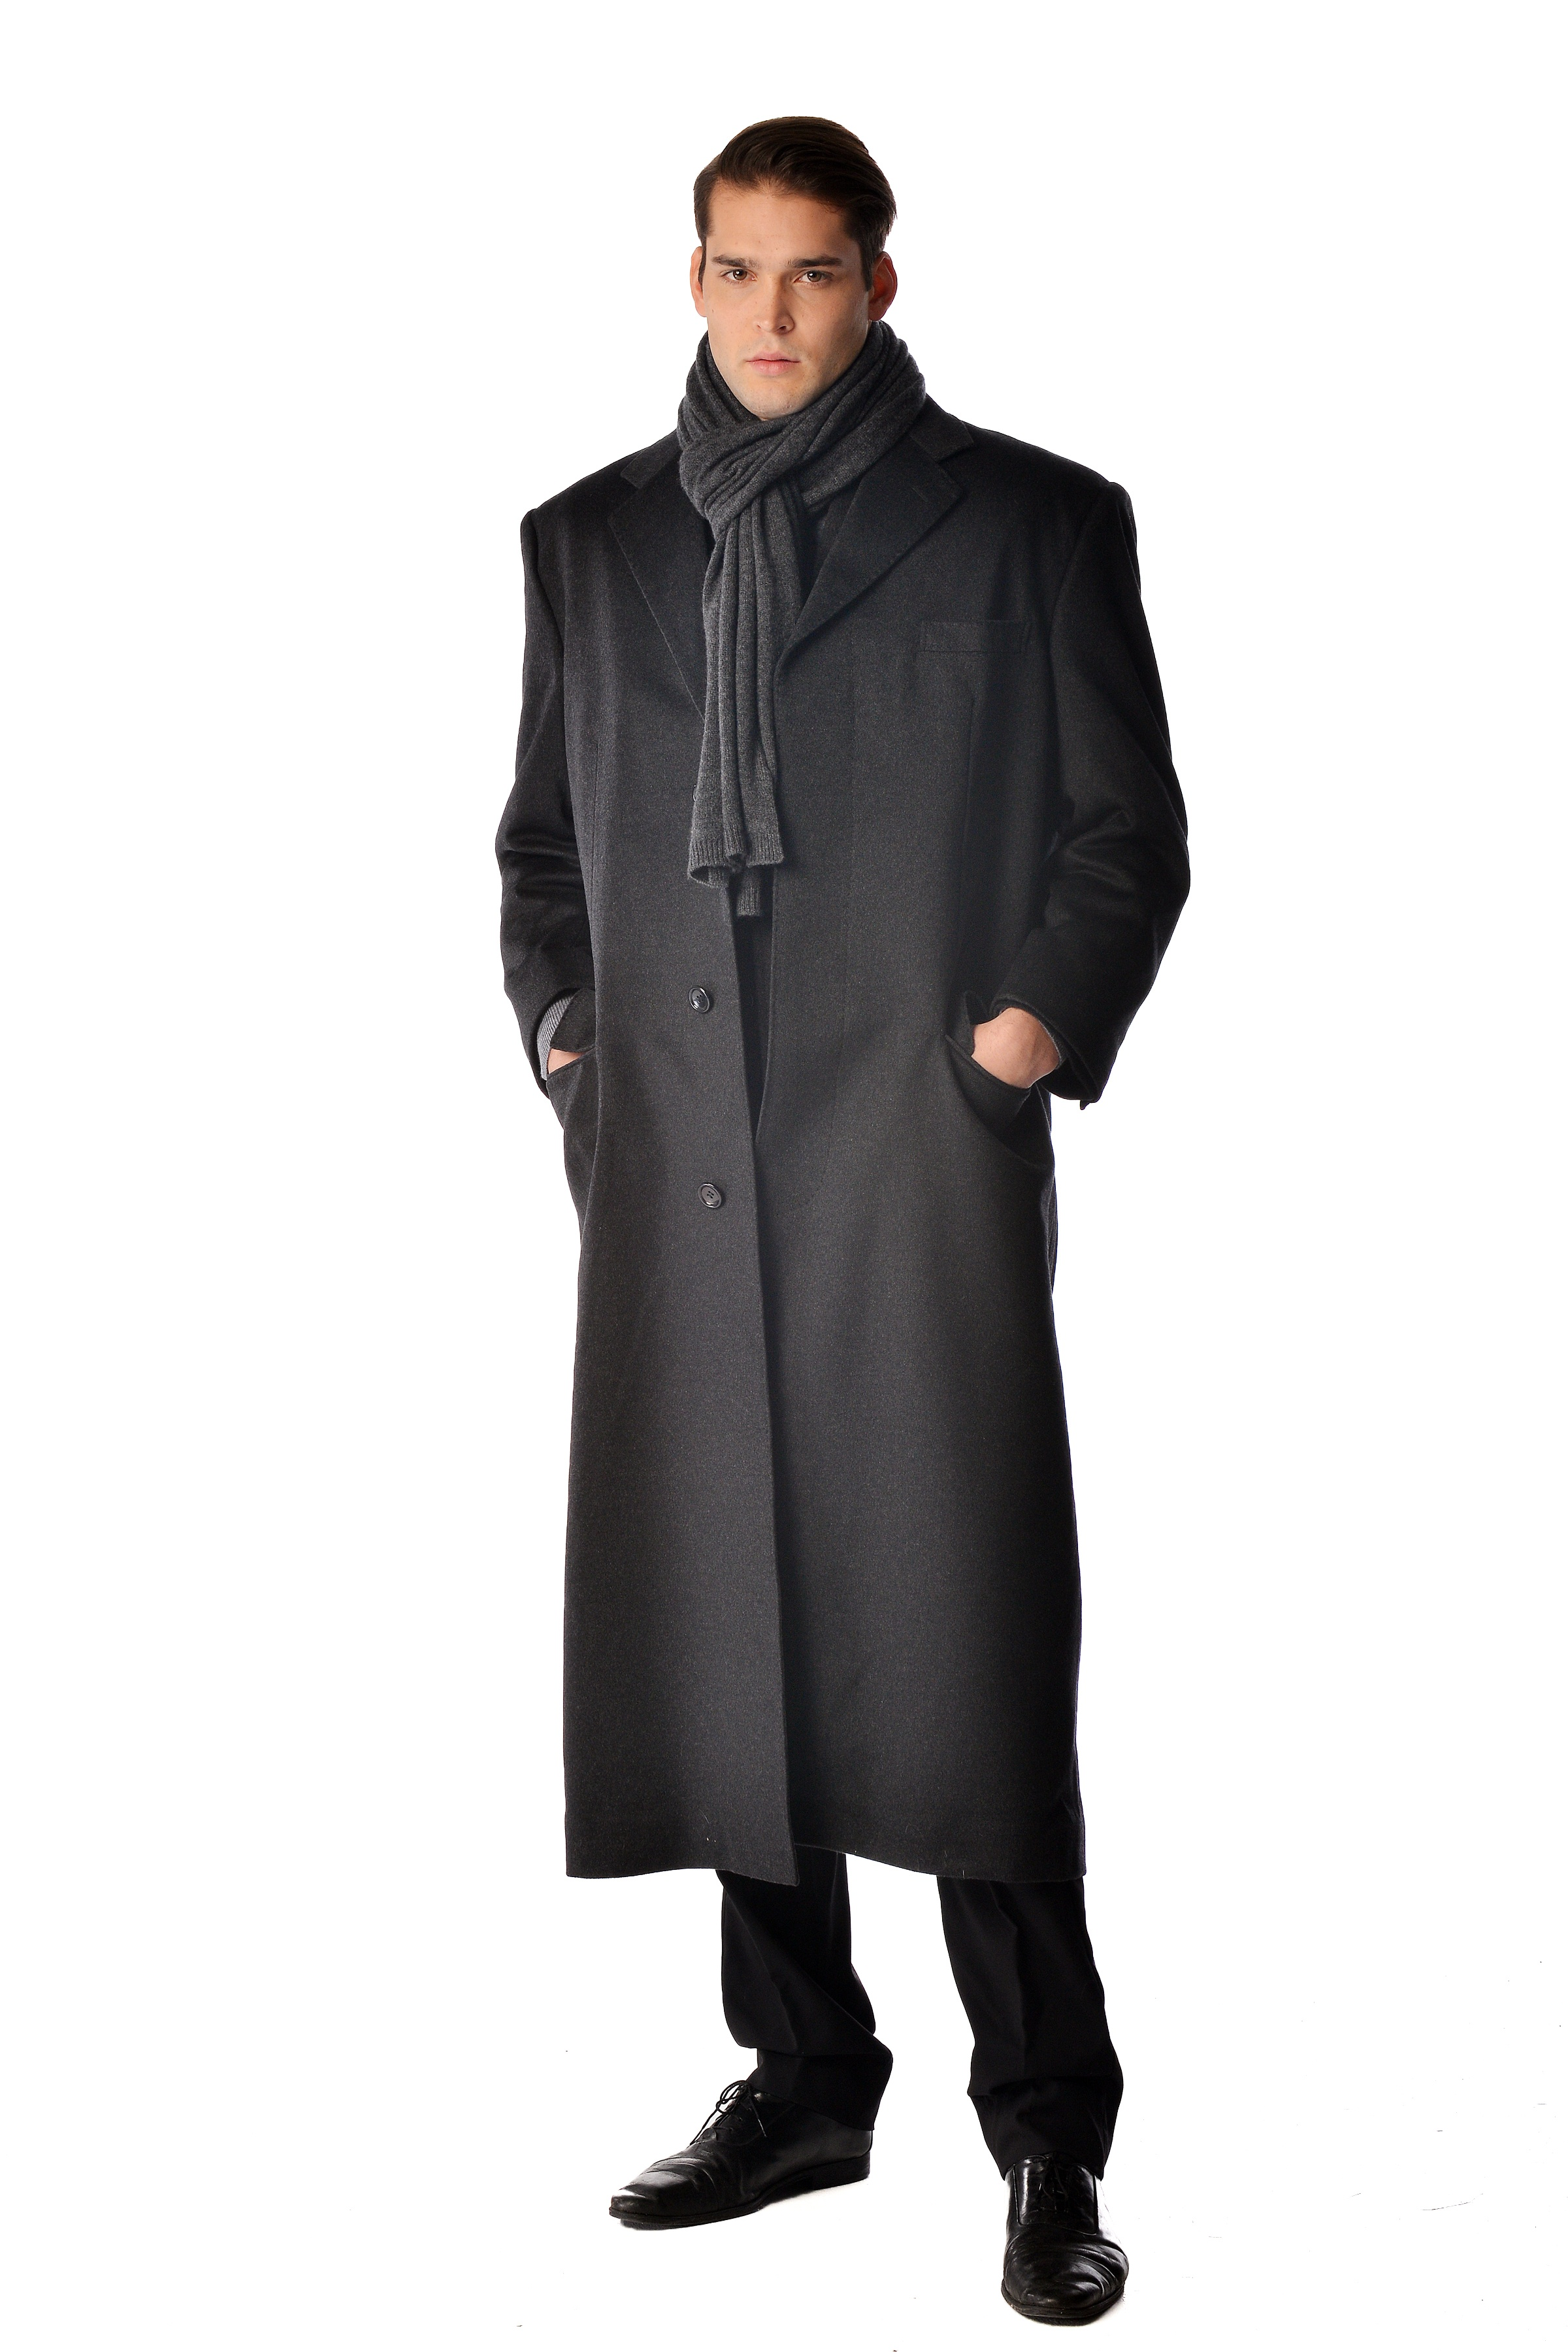 Cashmere Boutique - Quality Cashmere Coats & Jackets